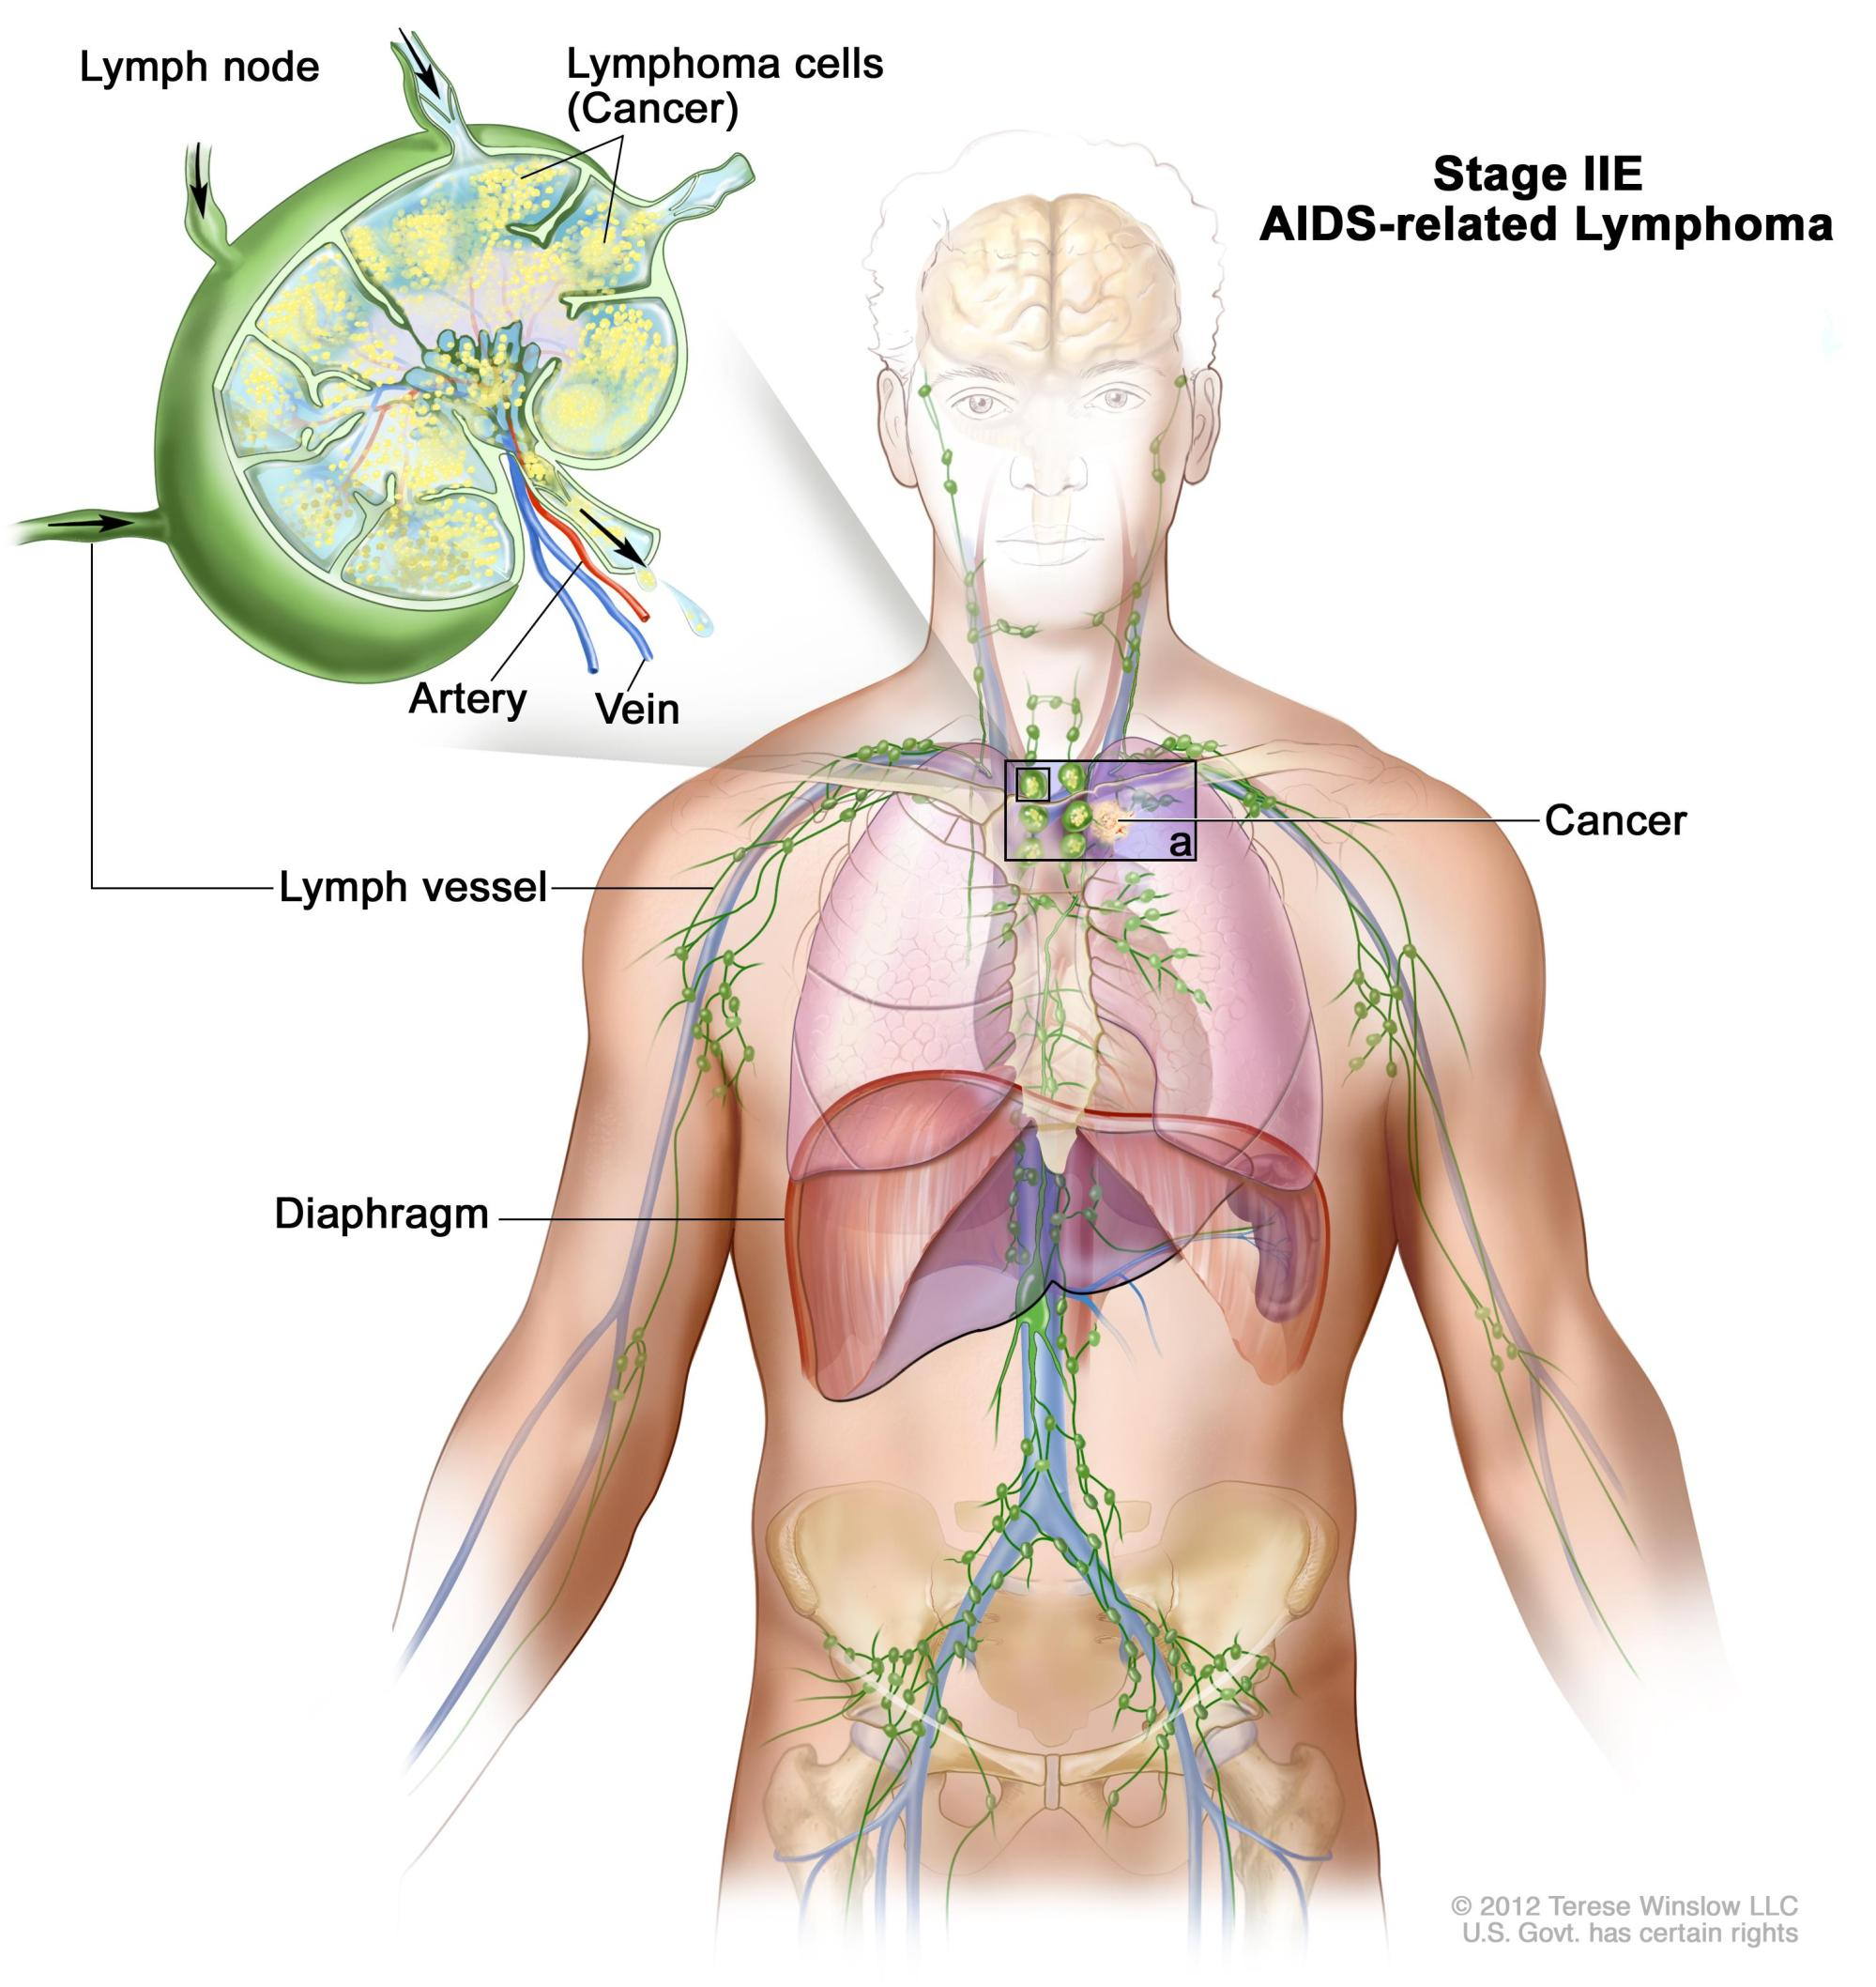 hight resolution of stage iie aids related lymphoma drawing shows cancer in one lymph node group above